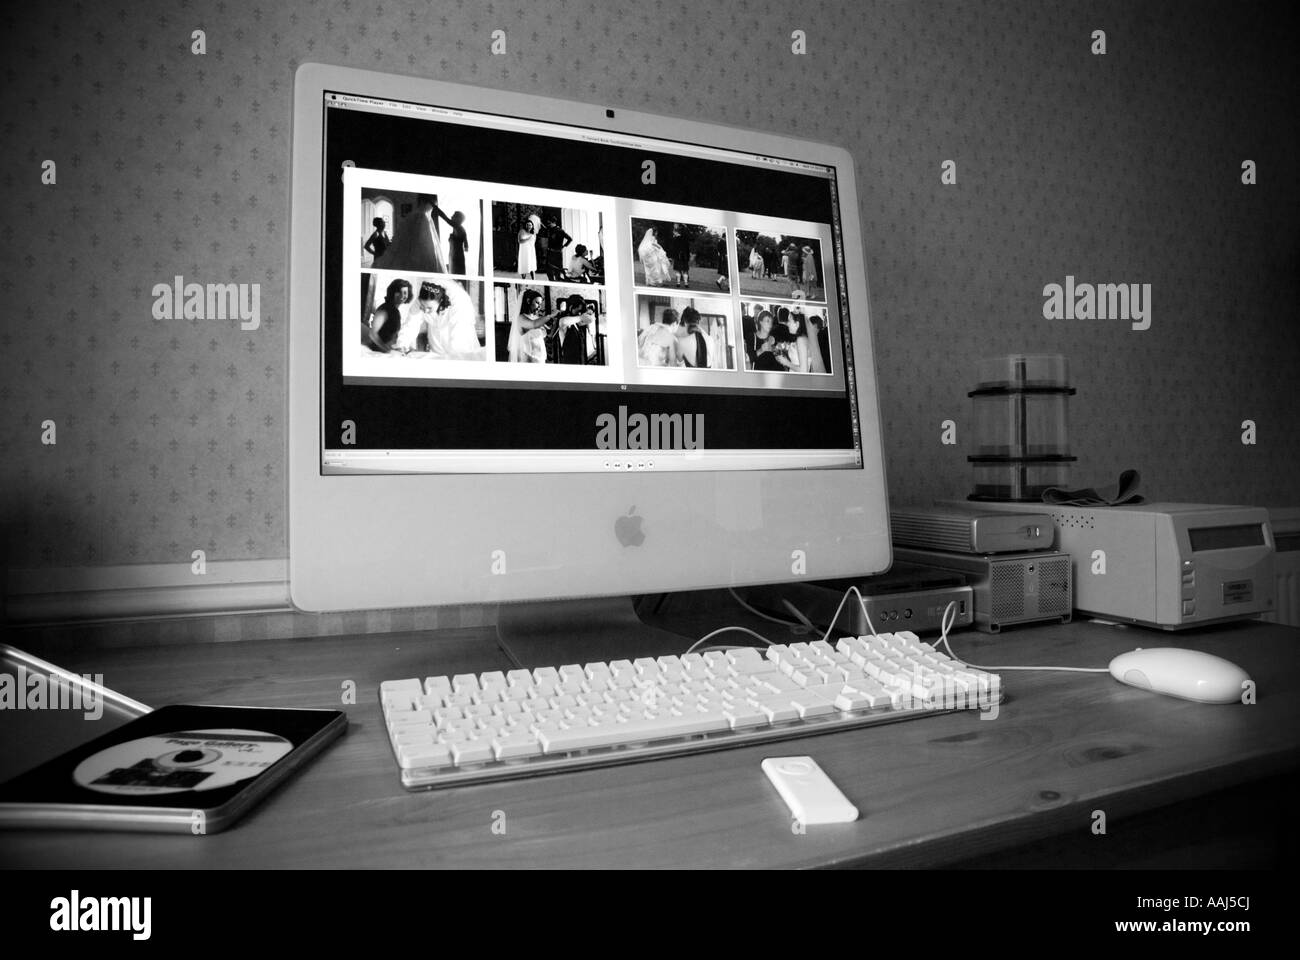 Apple IMac 24 Computer With Integral Large Screen In A Home Office  Environment May 2007 High Contrast Monochrome Version